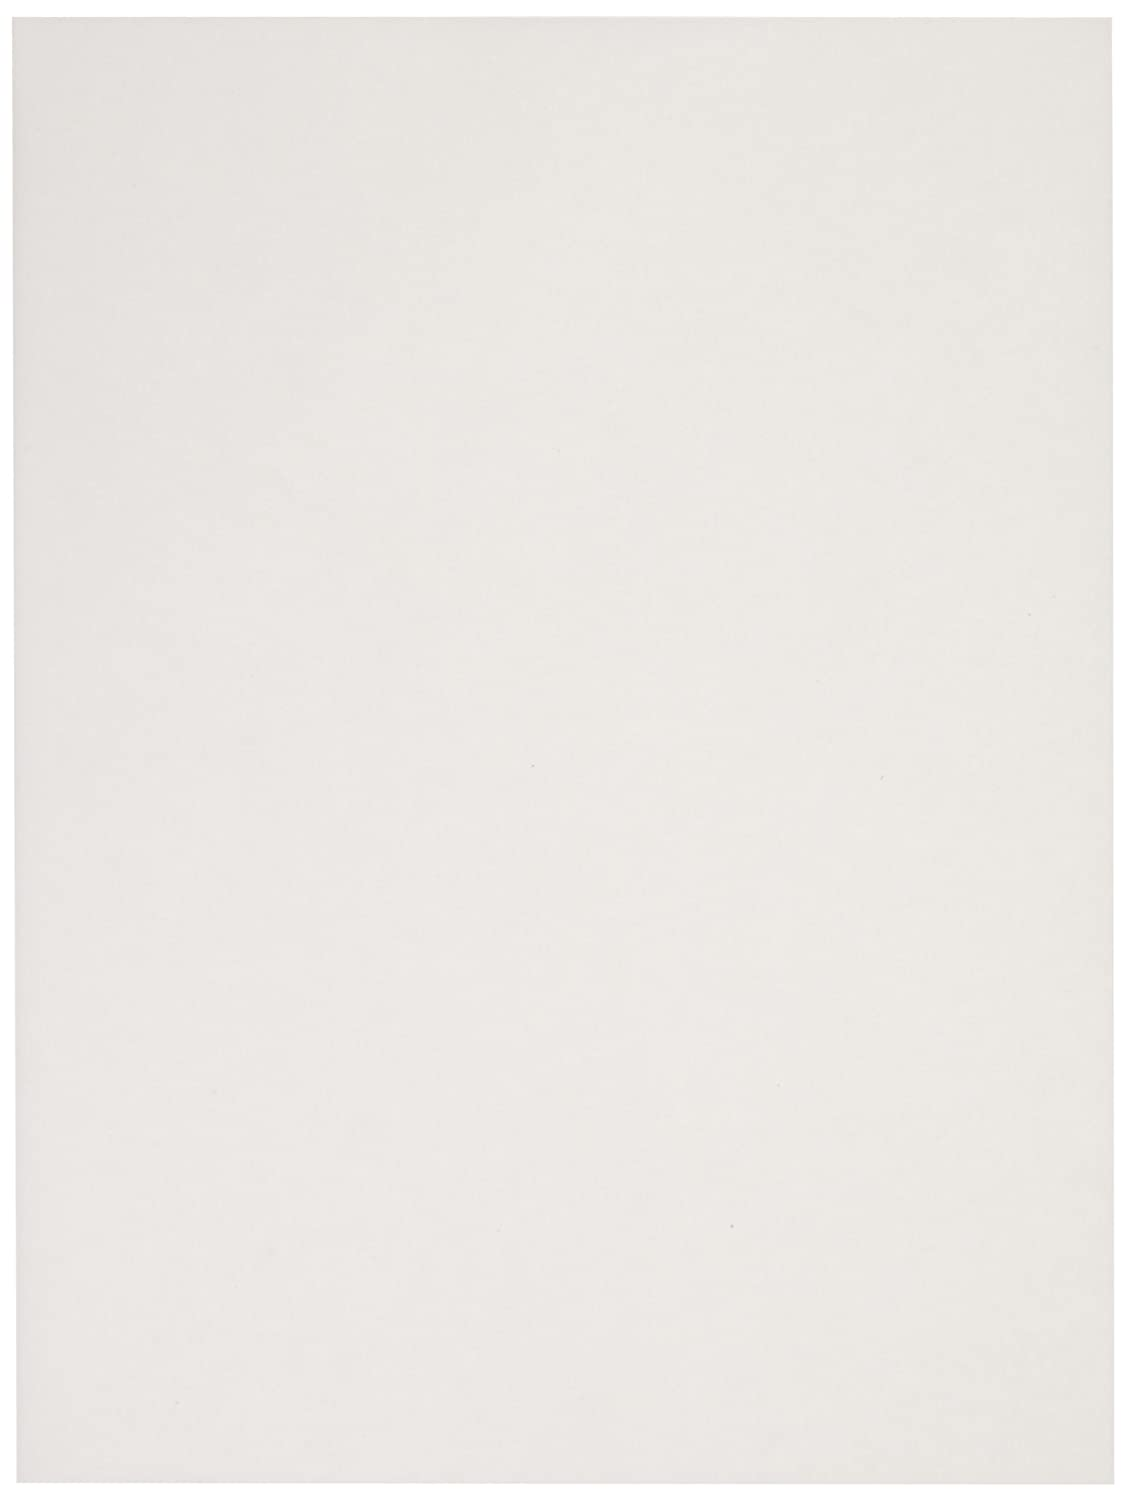 Sax Drawing Paper - 70 pound - 9 x 12 inches - Pack of 500 - White School Specialty 206309